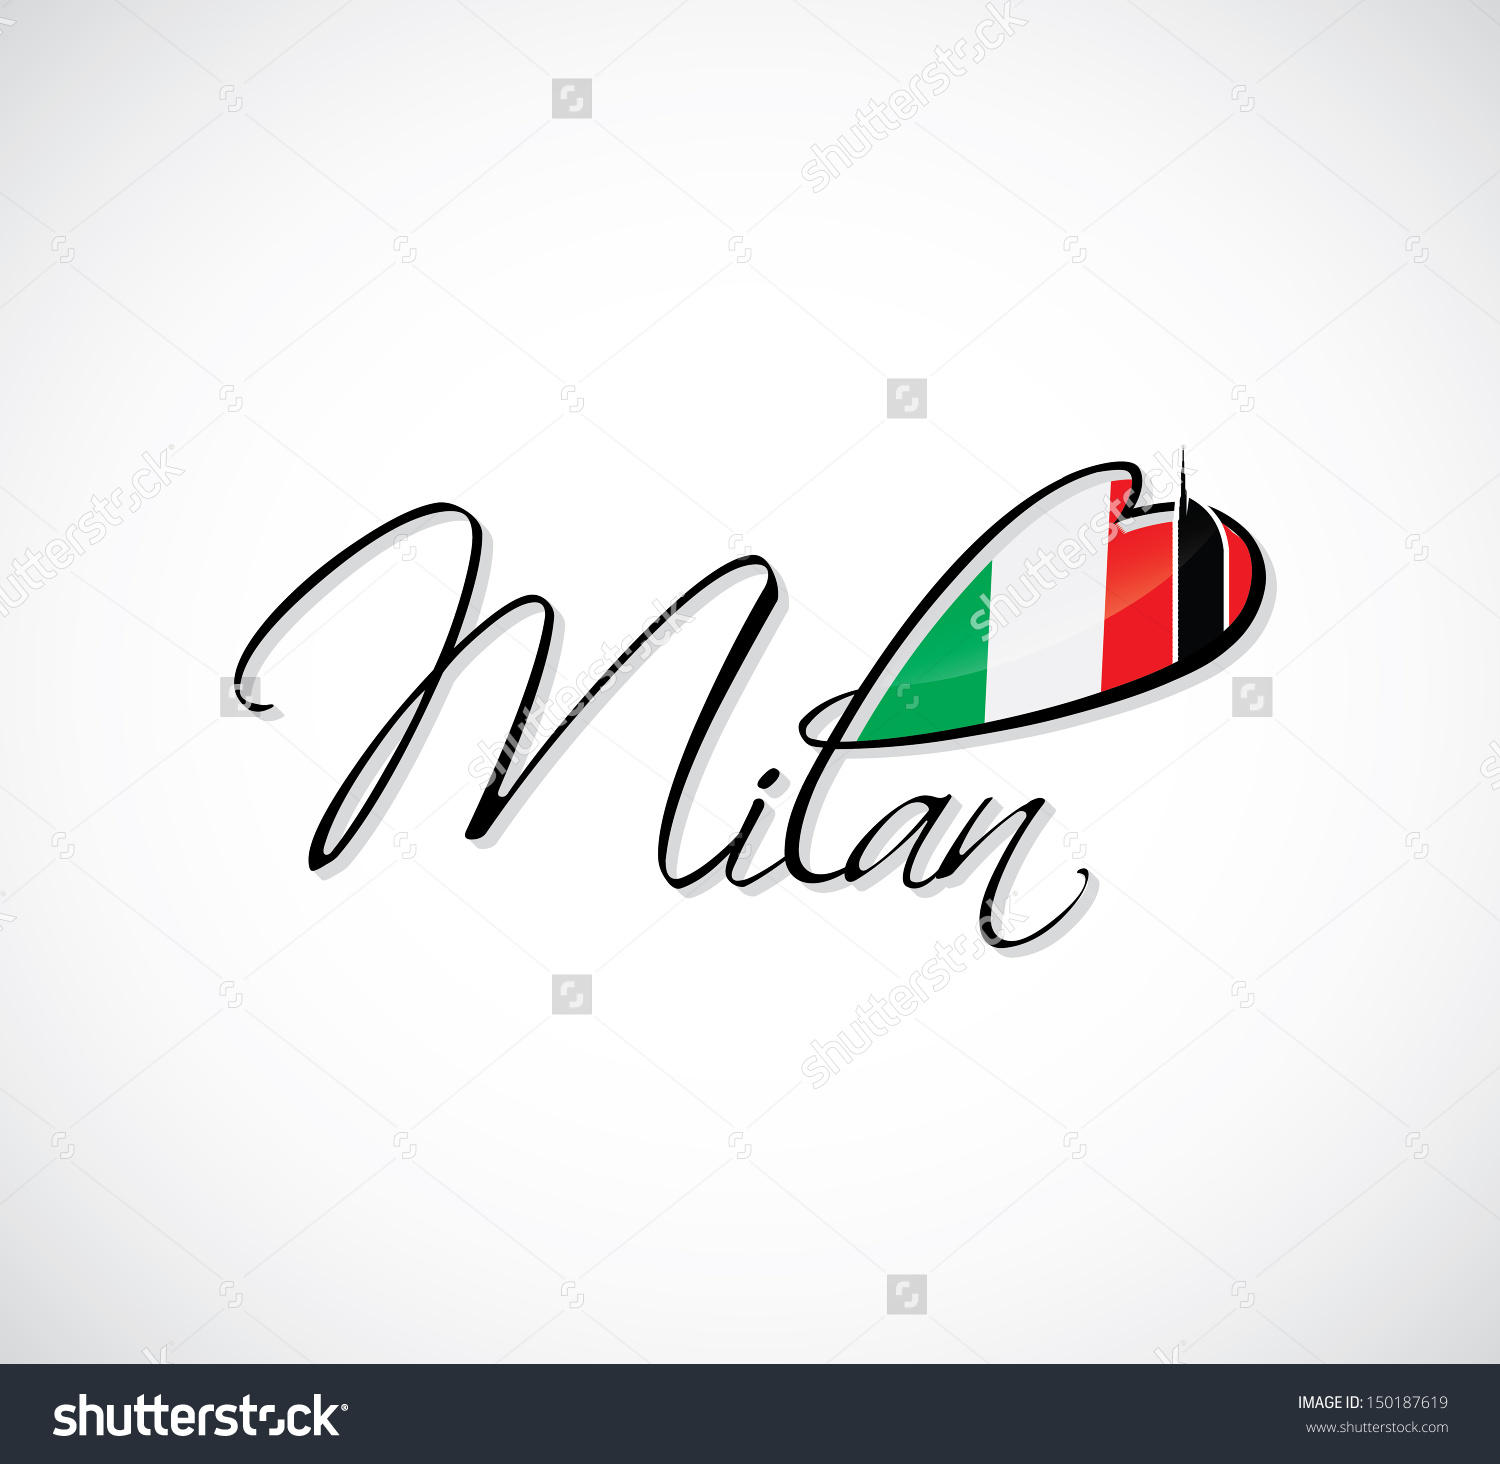 Milan clipart - Clipground